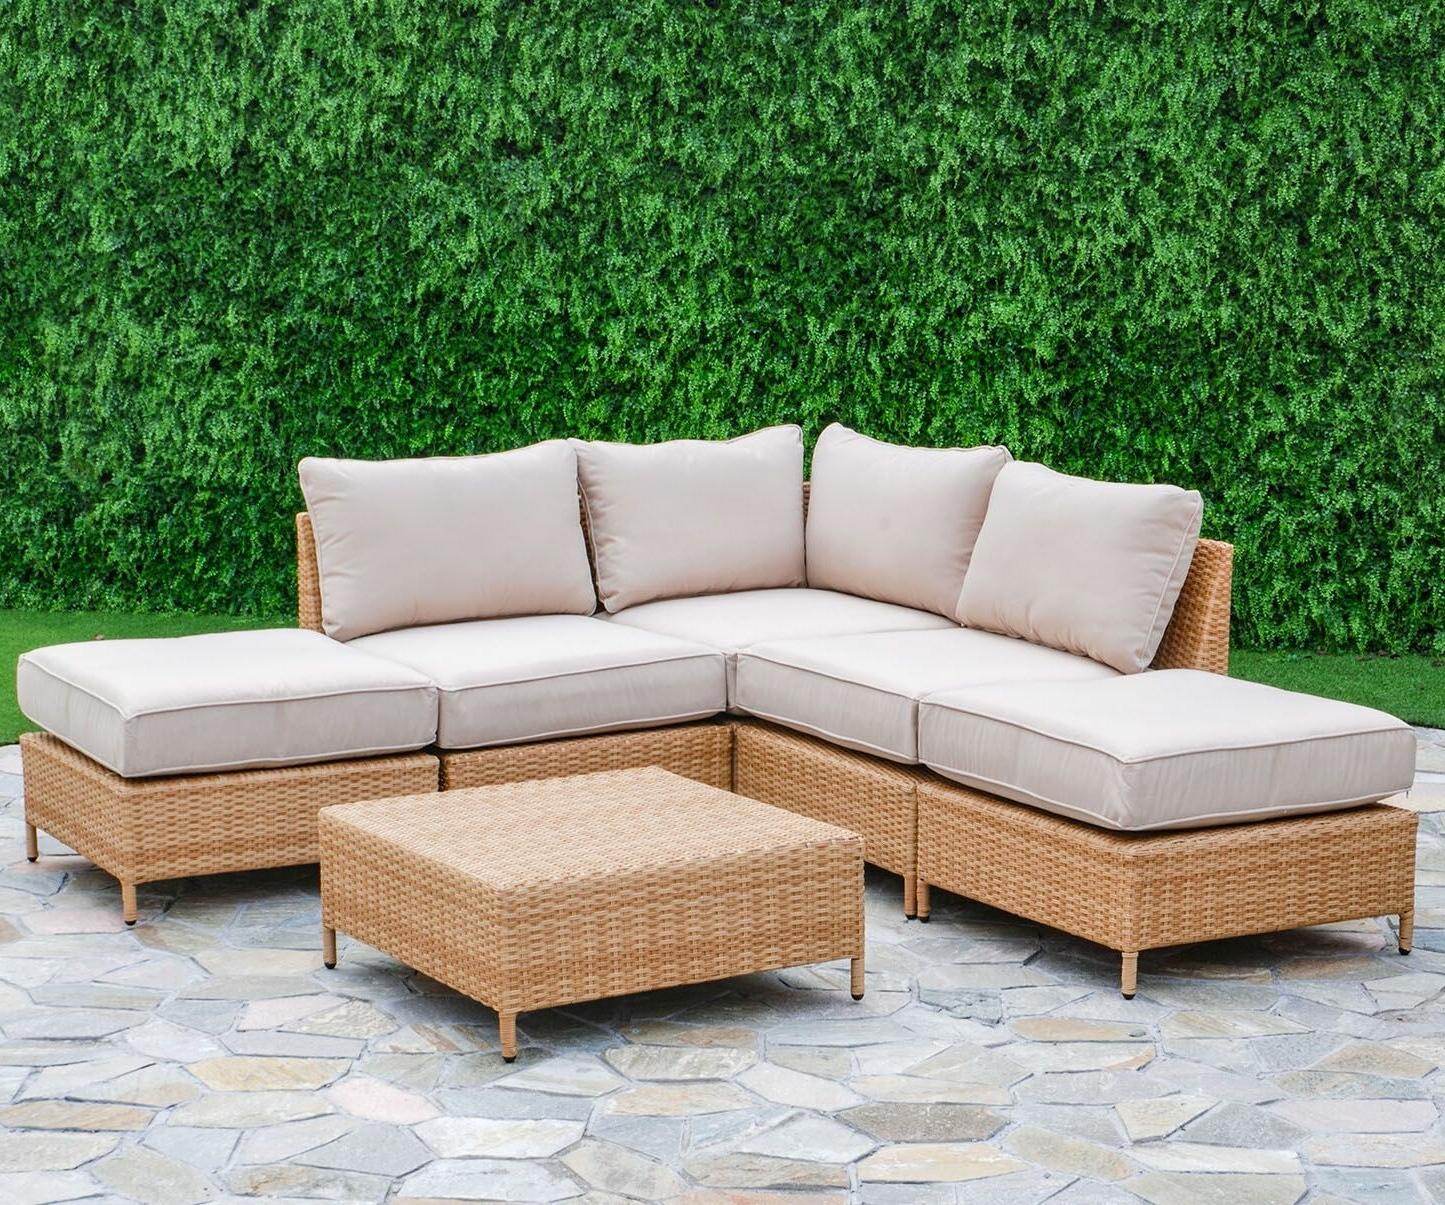 Best And Newest Olinda 3 Piece Sectionals Seating Group With Cushions Regarding Breakwater Bay Tamworth 6 Piece Sectional Seating Group With Cushions (View 9 of 25)